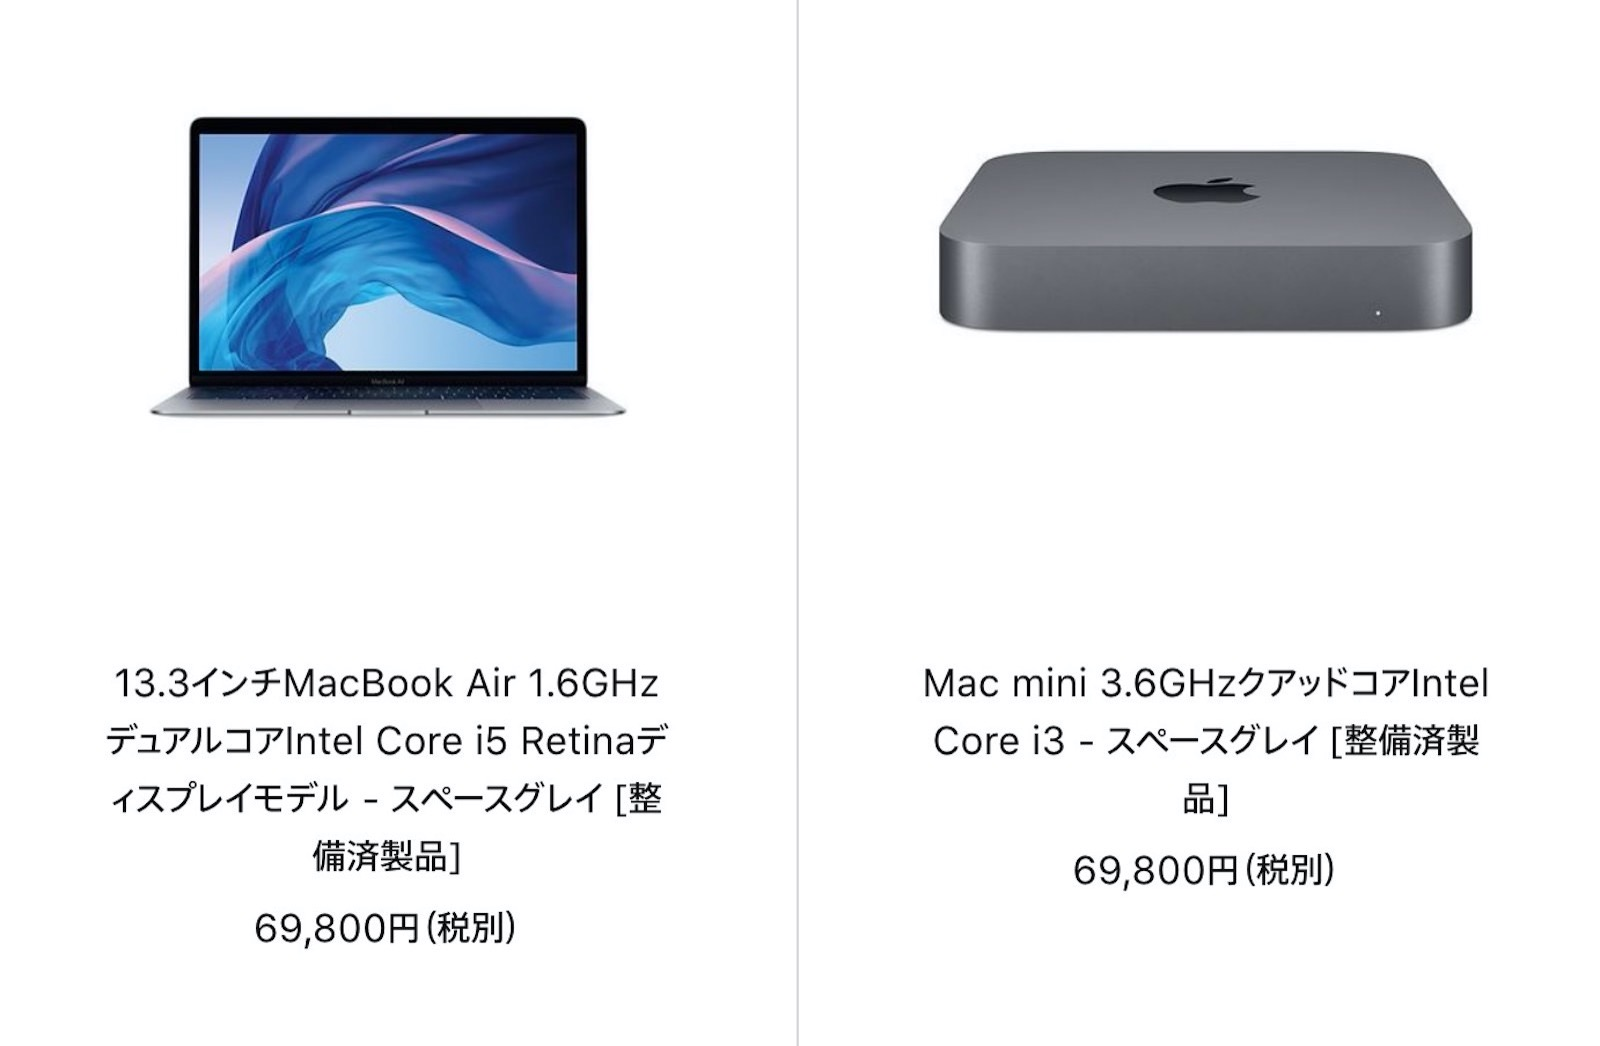 Mac mini and macbook air refurbished